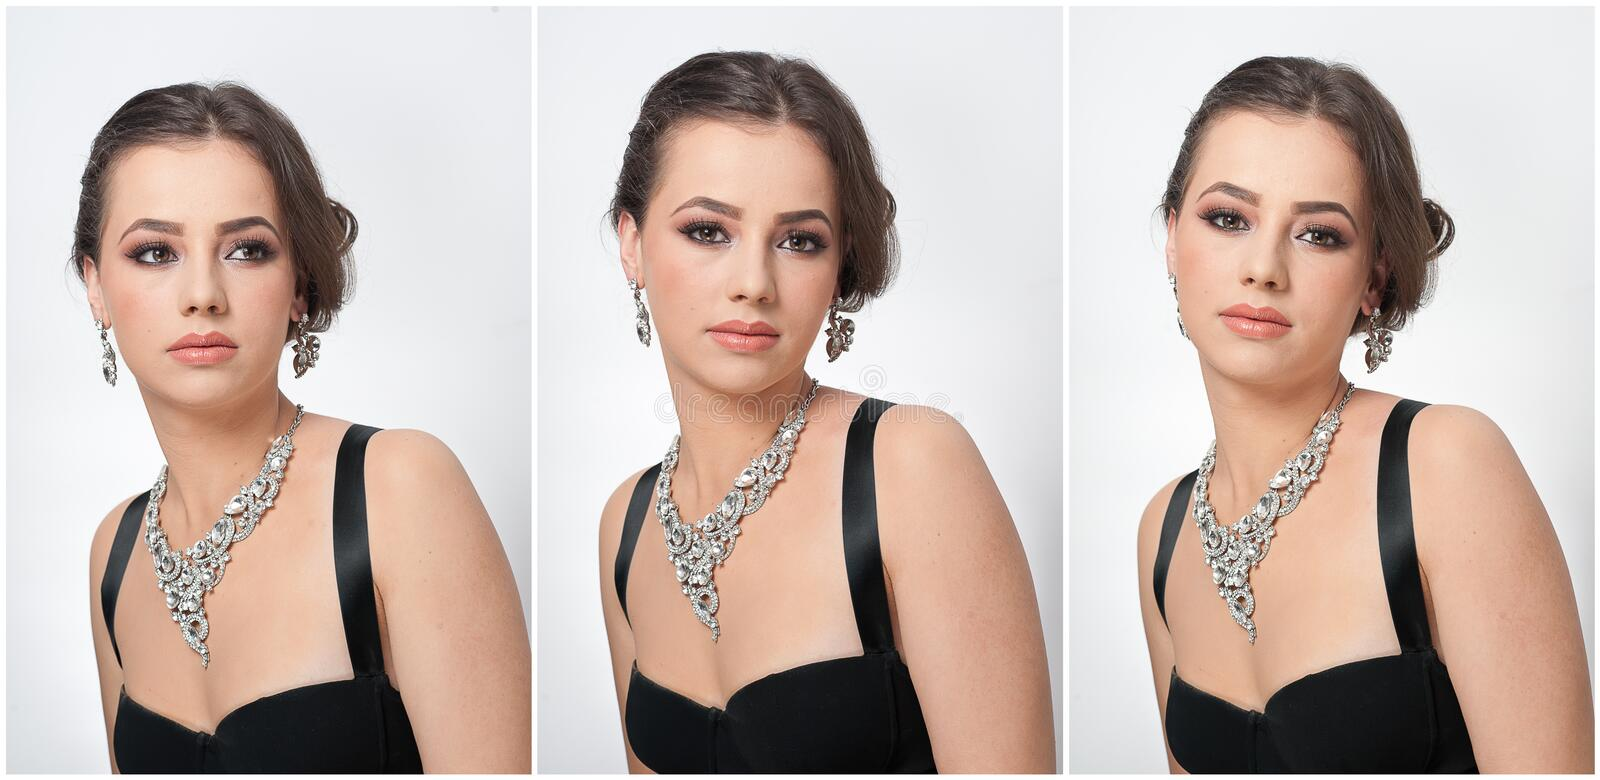 Hairstyle and make up - beautiful female art portrait with beautiful eyes. Elegance. Genuine natural brunette with jewelry royalty free stock photography